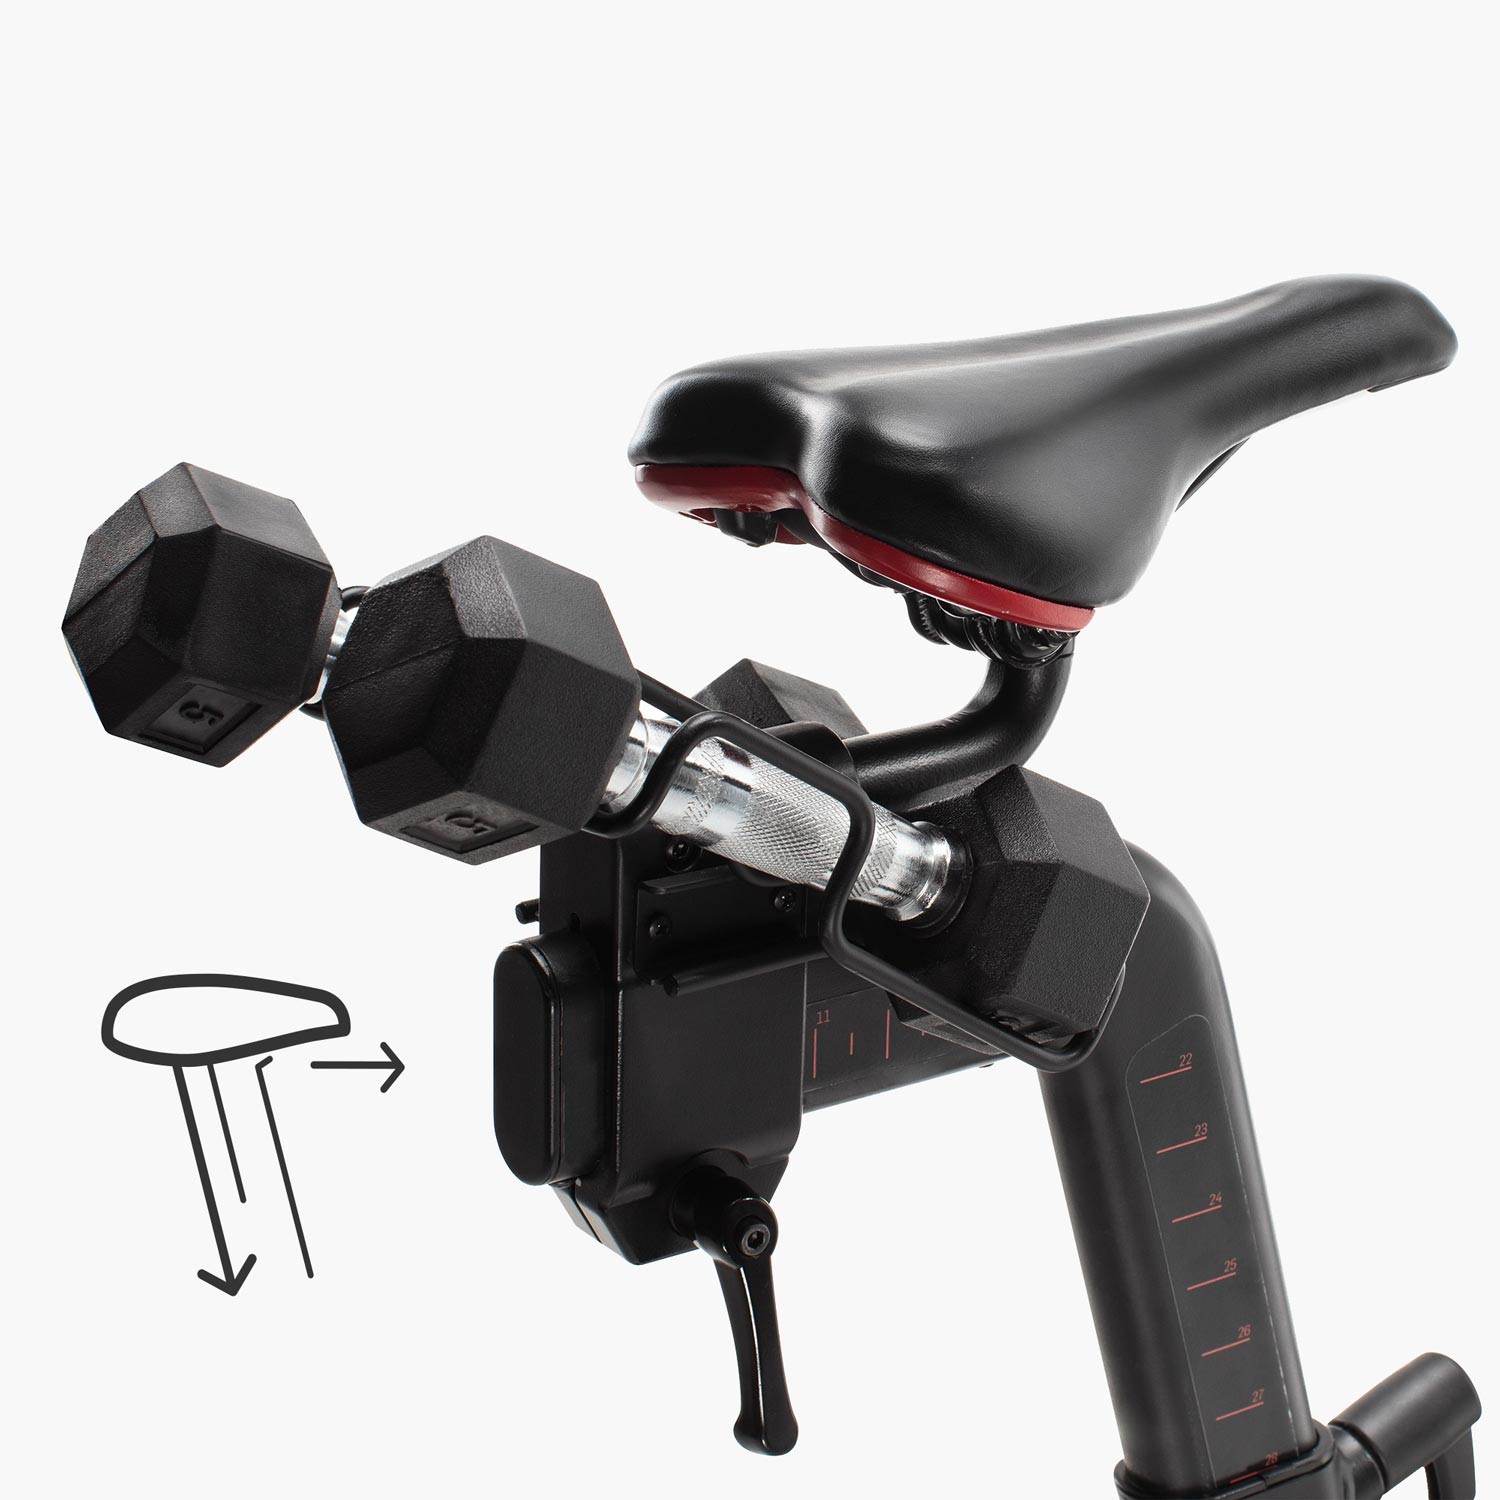 Both the Bike's seat and handle bars easily adjust. The seat in a horizontal and vertical direction. A set of two 3 pound weights is included